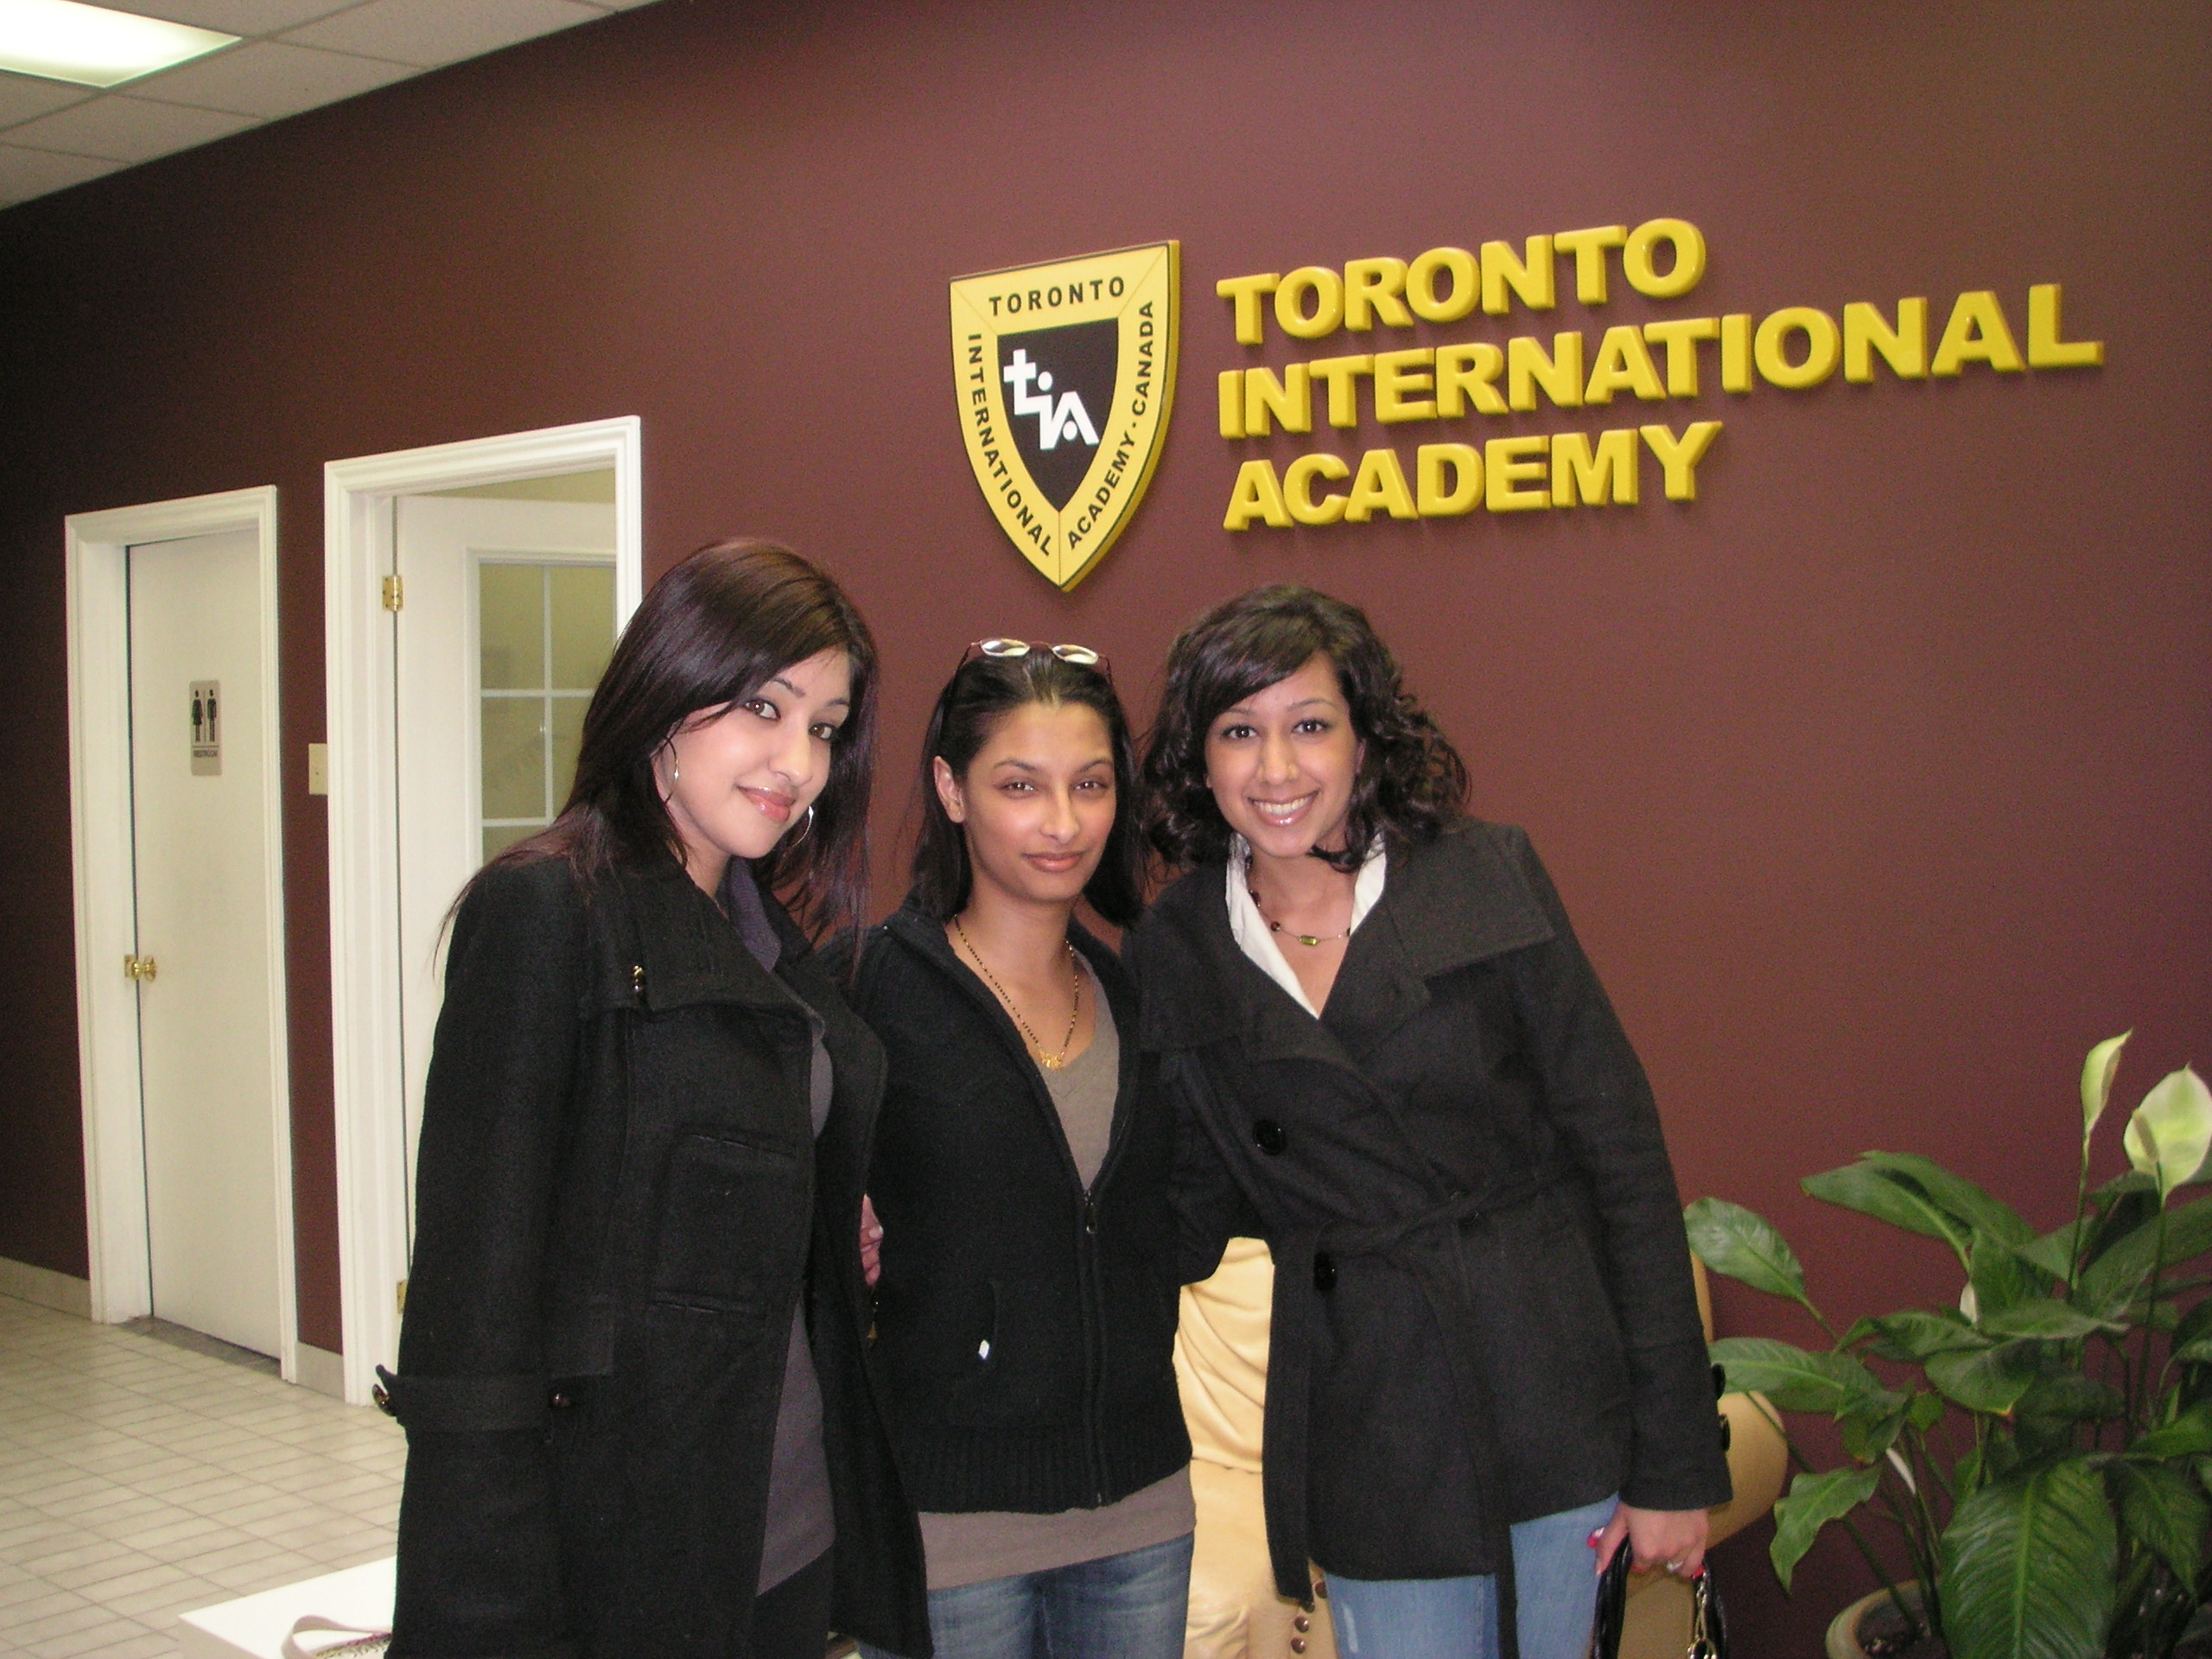 Toronto International Academy - Canada